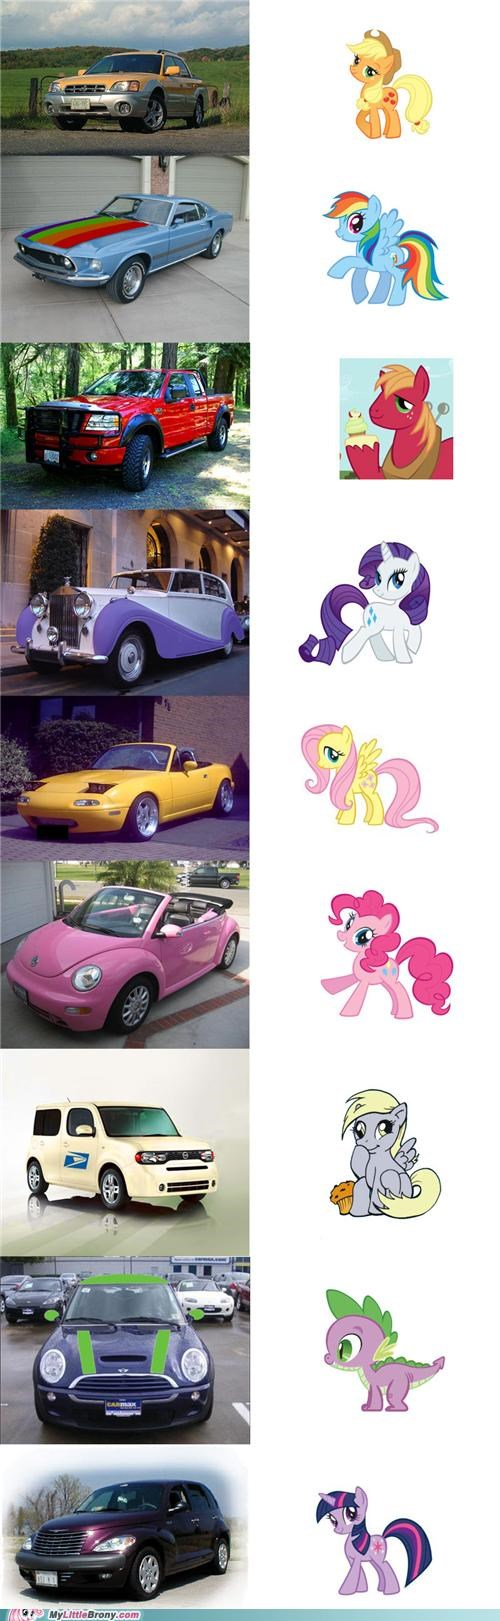 20-cooler cars comparison IRL totally looks like - 5147696640